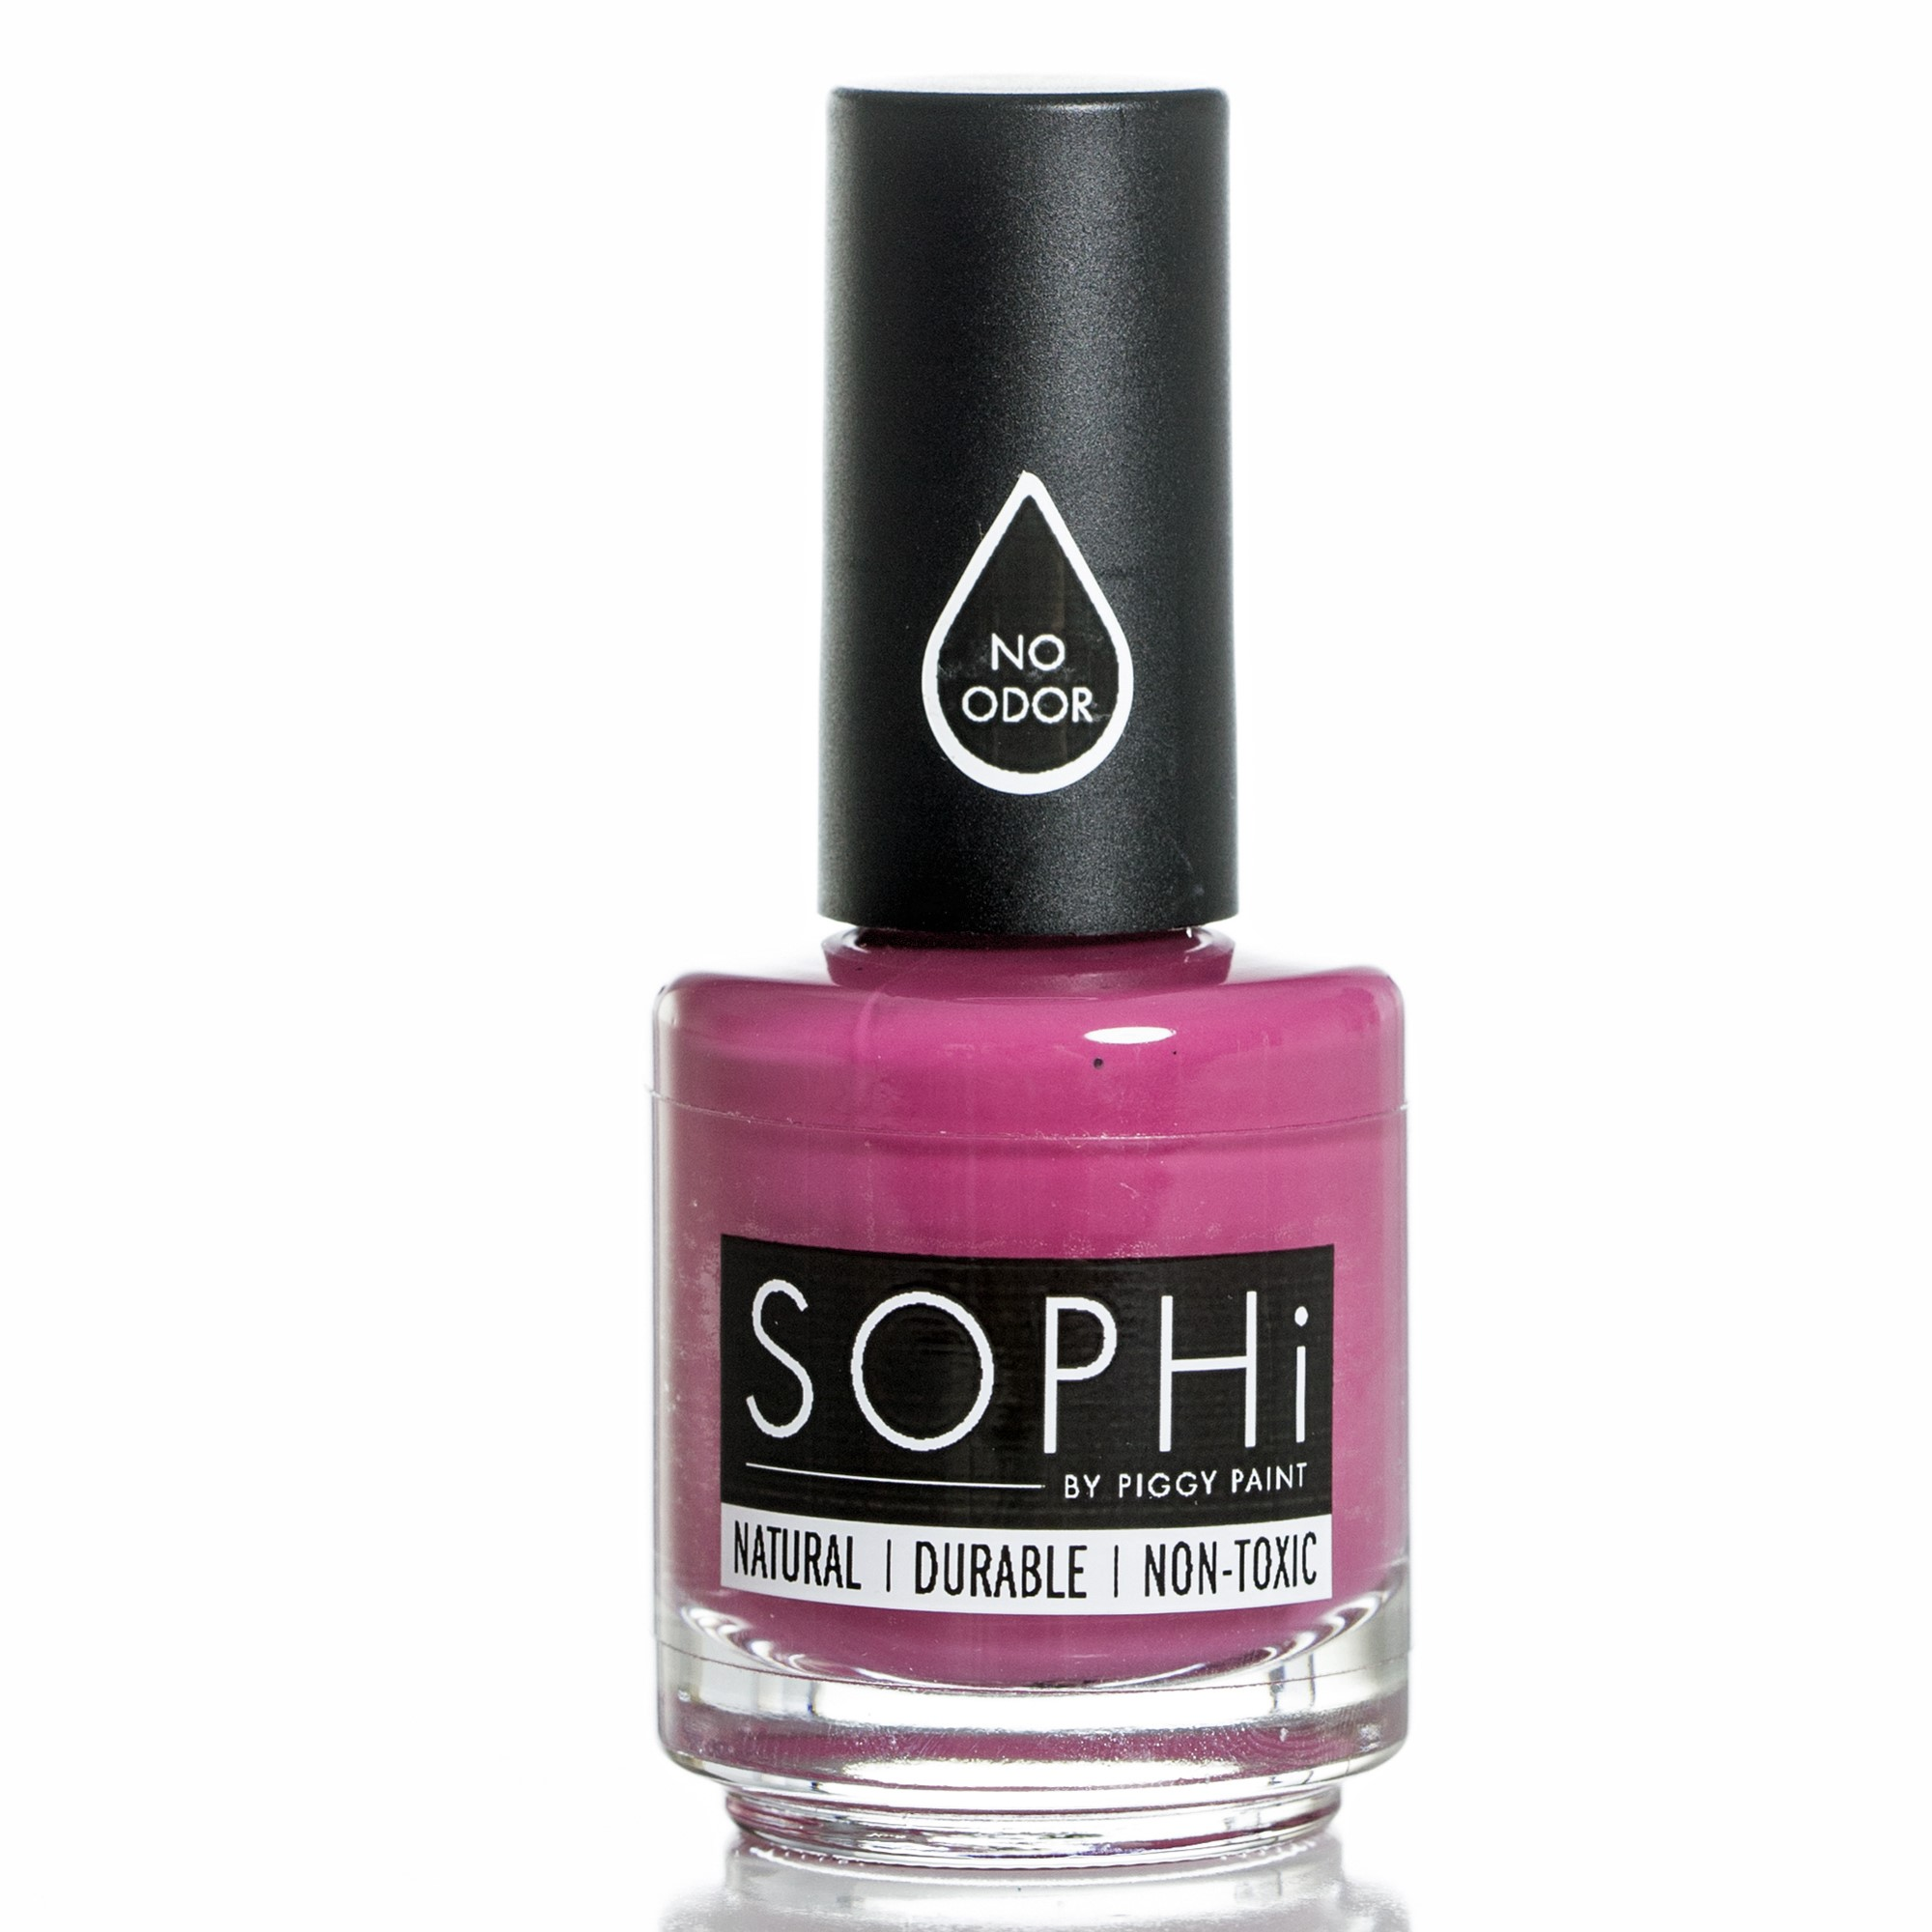 SOPHi Nail Polish, PLUM-P Up the Volume, Non Toxic, Safe, Free of All Harsh Chemicals - 0.5 oz